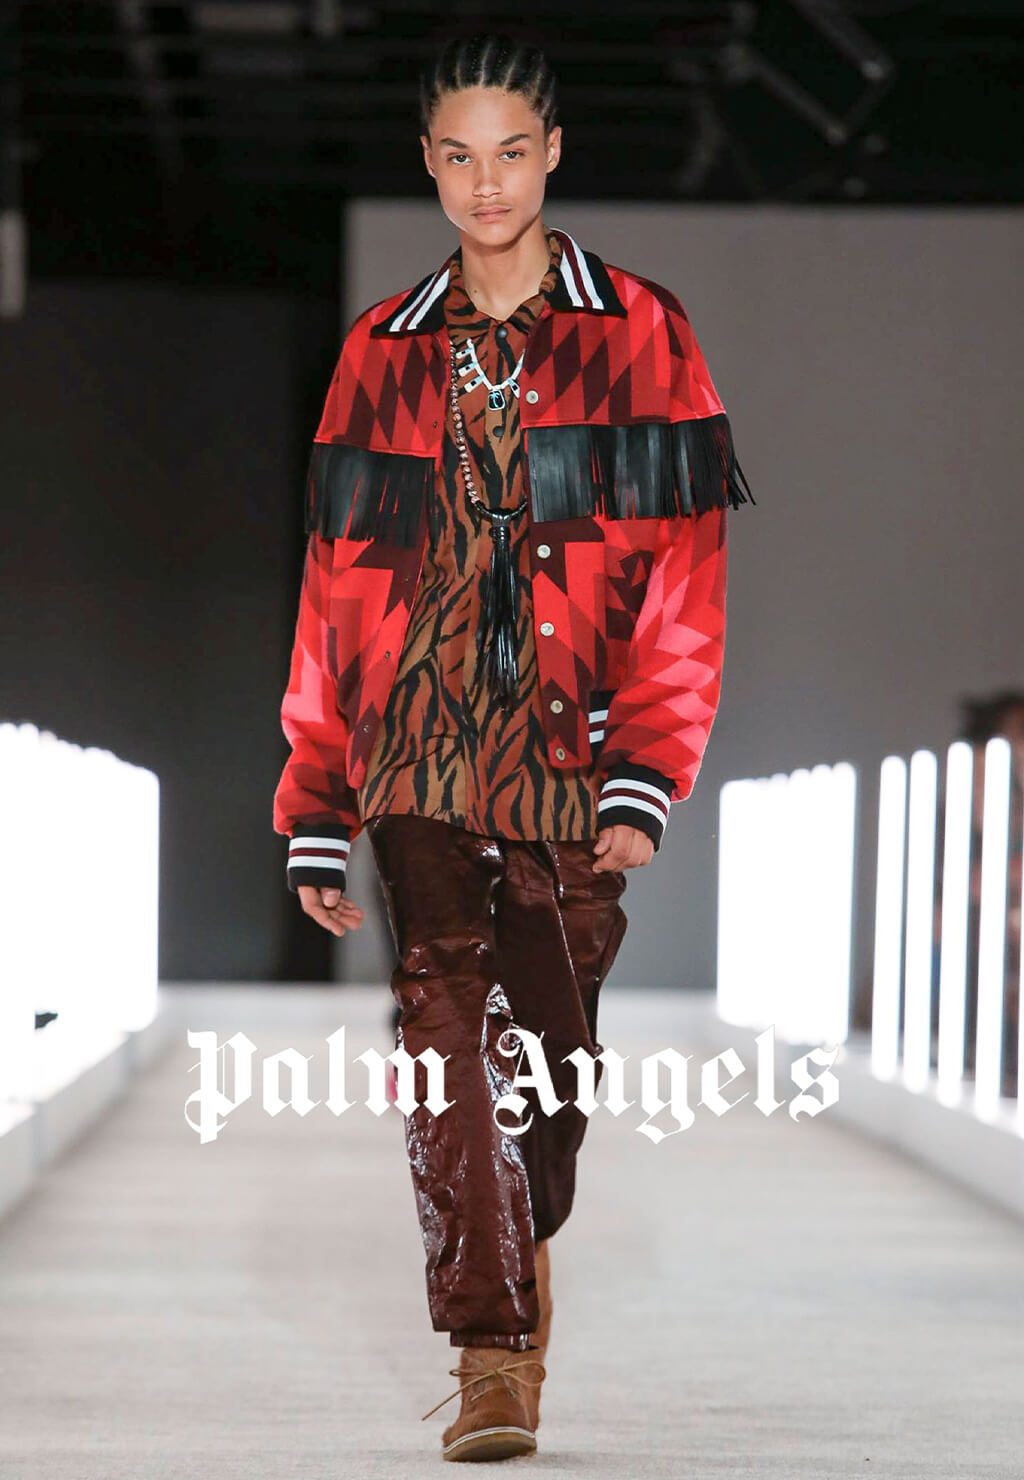 Joaquim Palm Angels NY Fashion Week - Fevrerio 2020